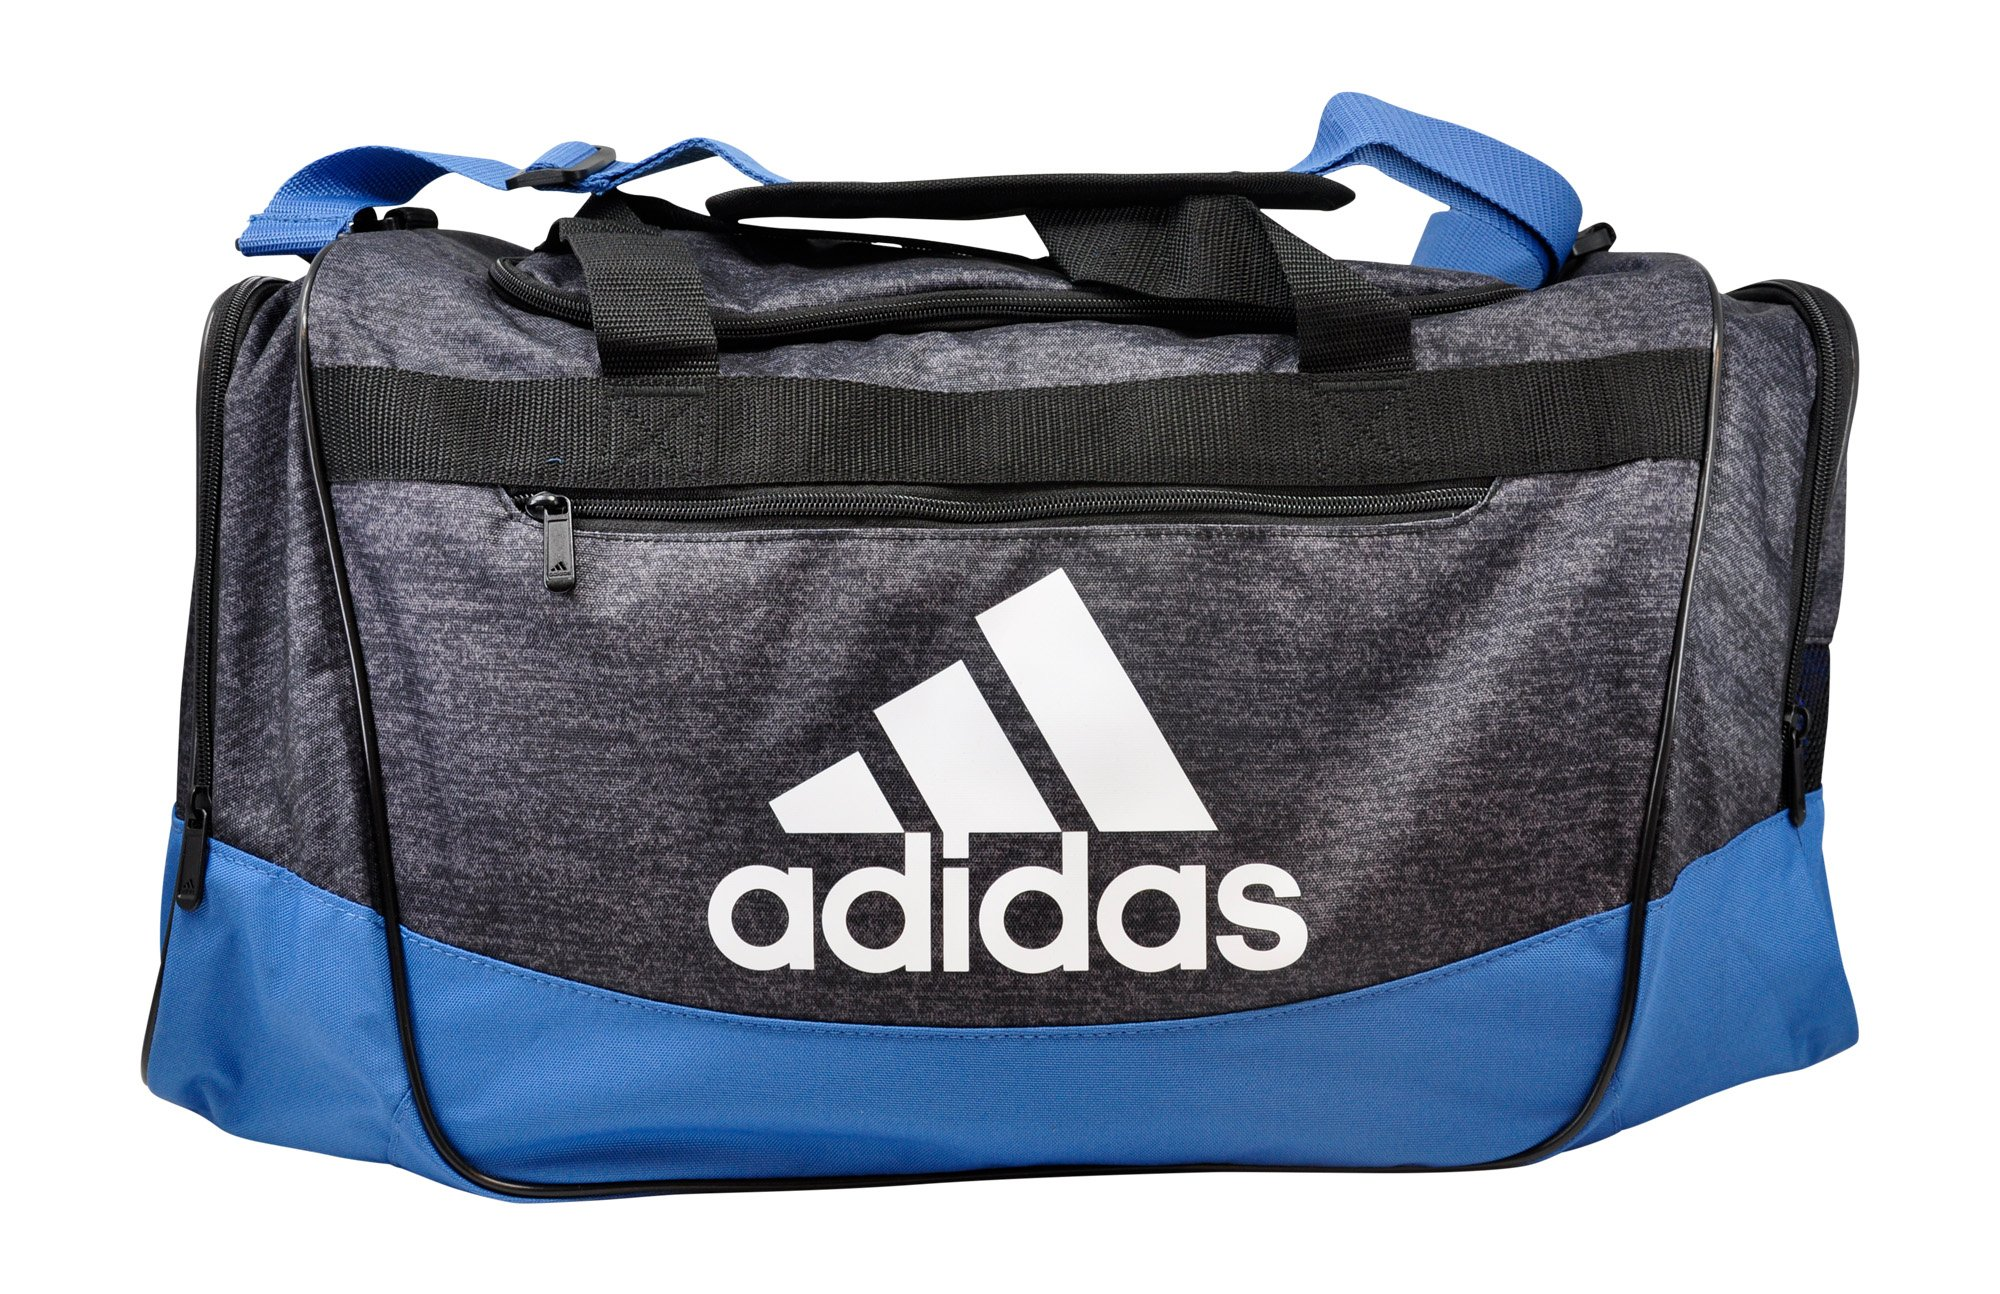 adidas Defender III Duffel Bag, Black Jersey/Trace Royal/Black/White, Medium